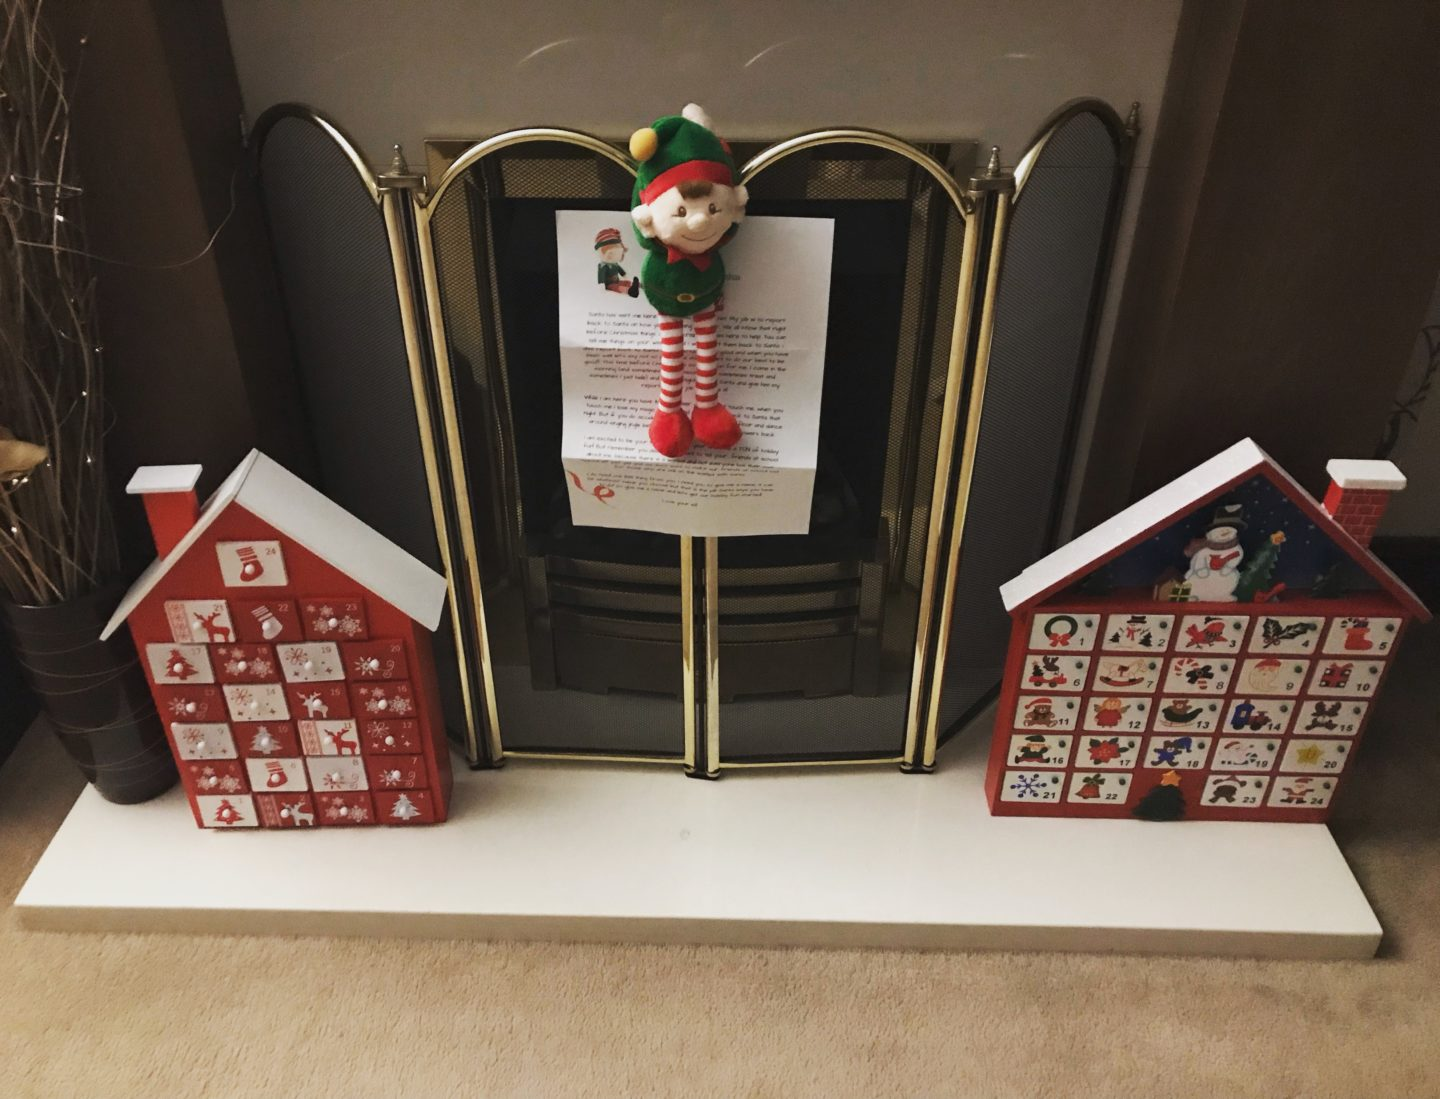 Elf On The Shelf - Let The Chaos Commence